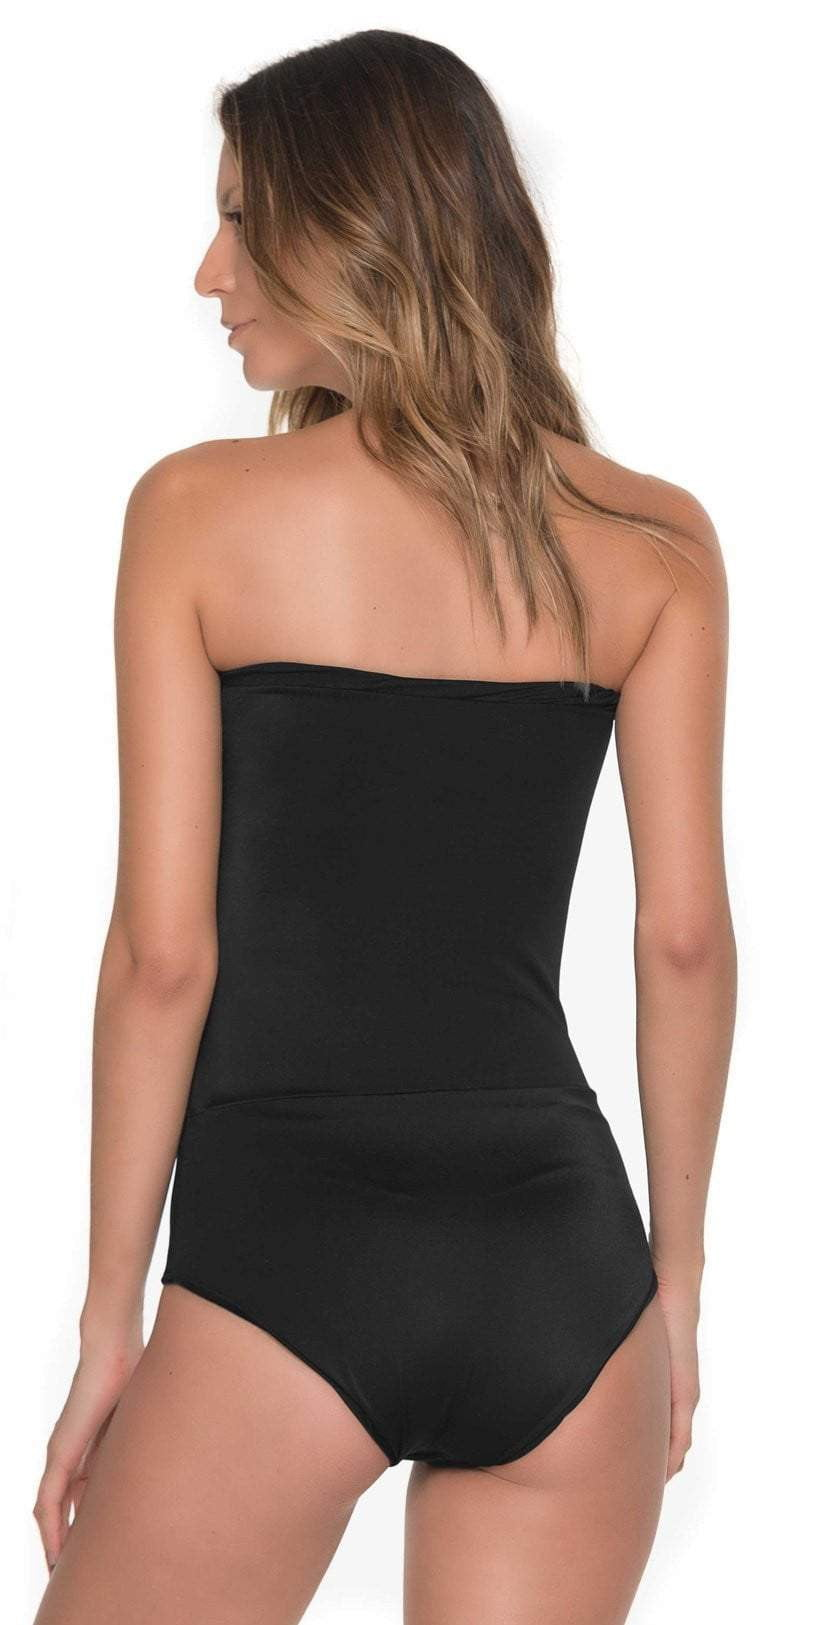 Malai Glam Fishbone One Piece In Black OP0108-BLK: